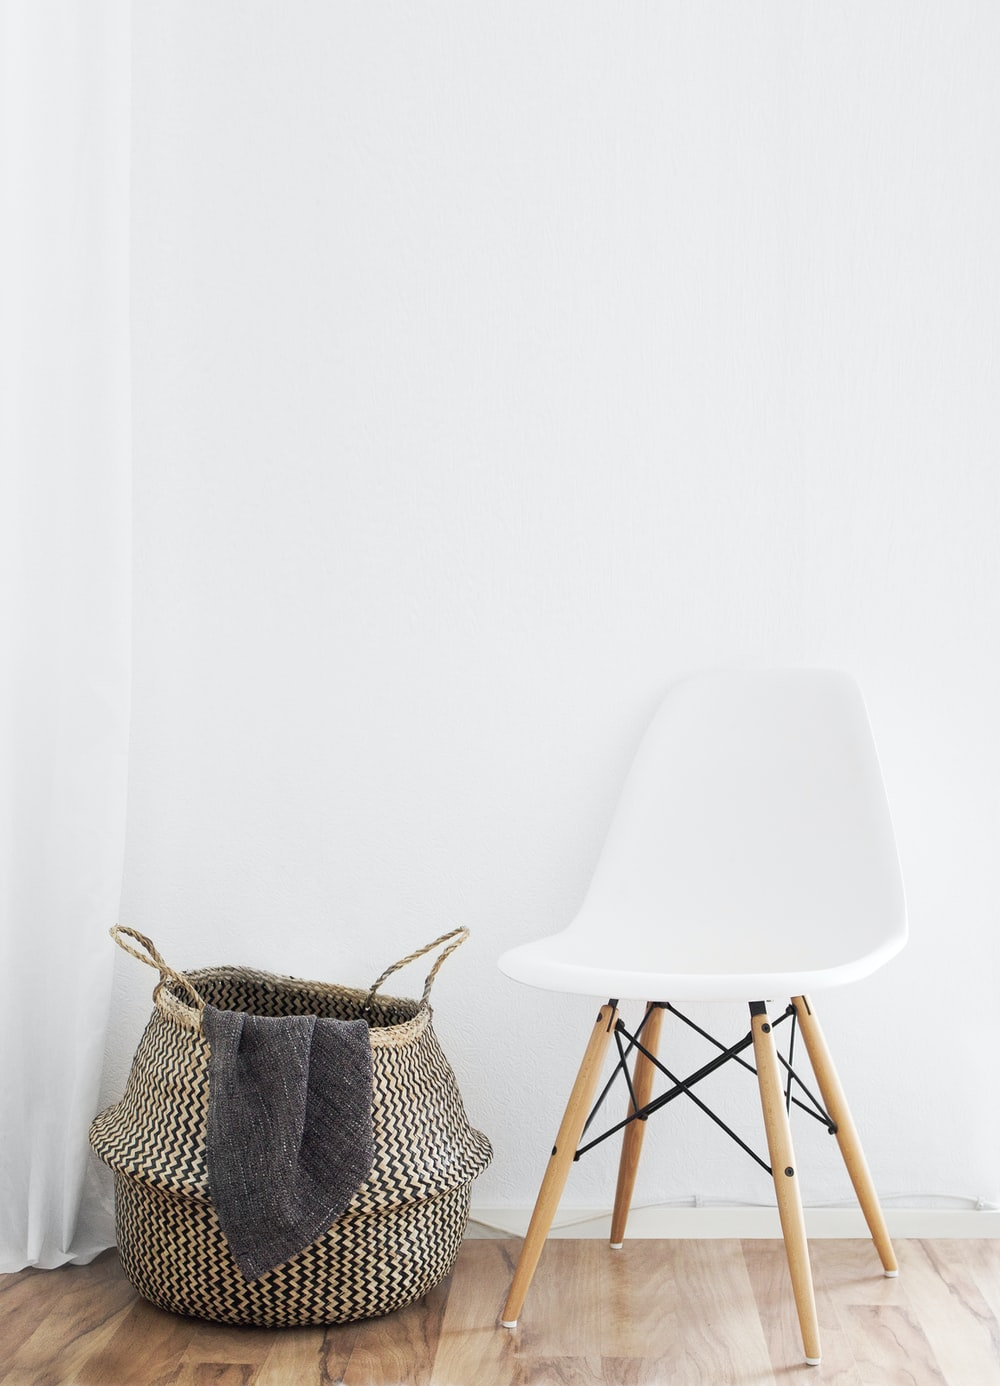 white and brown chairs beside wicker basket near white wall